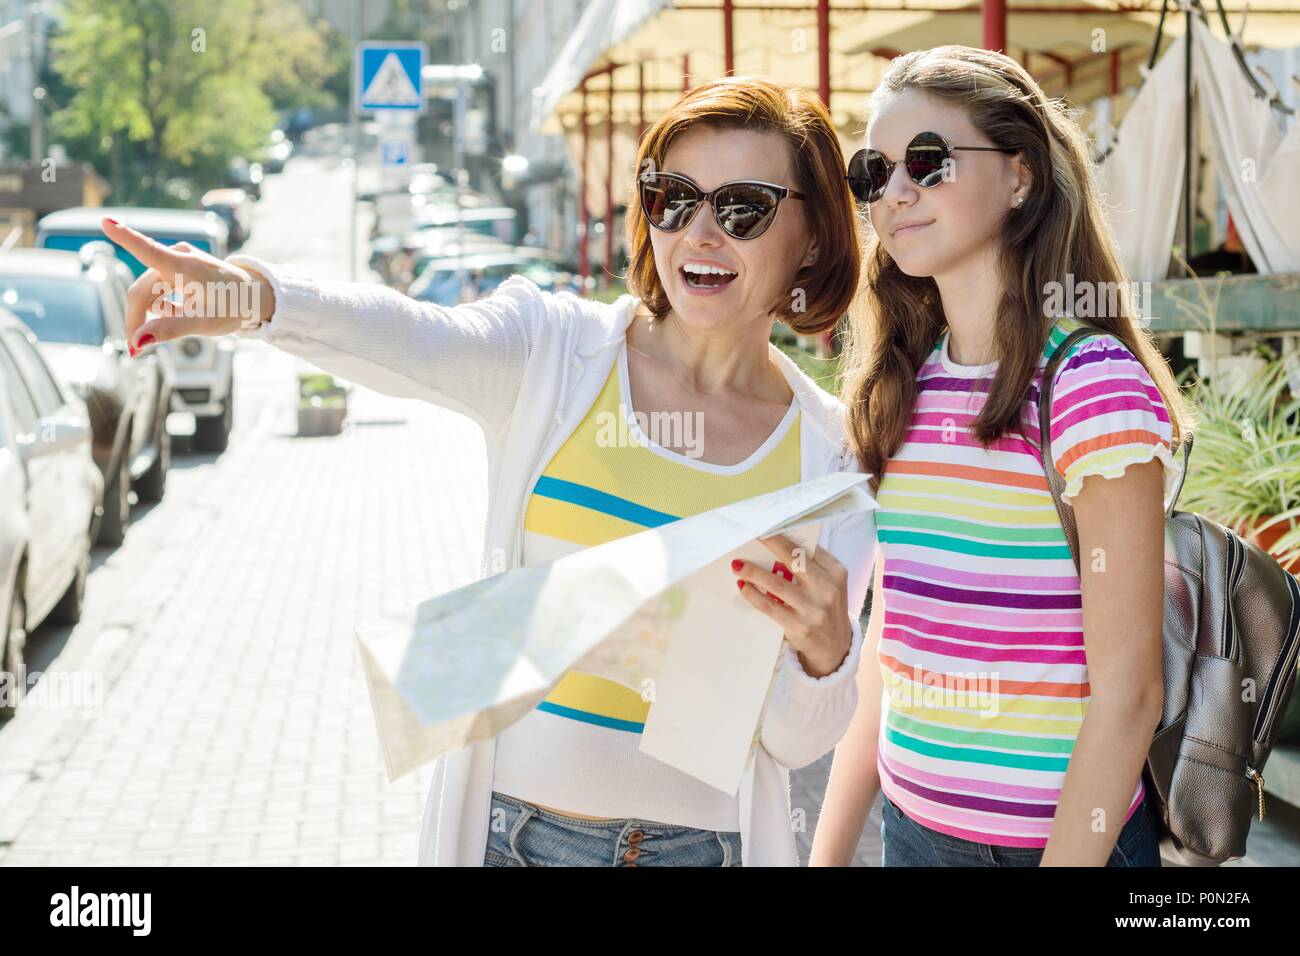 Mom and daughter teenager tourist looking at the map on the street of city - Stock Image